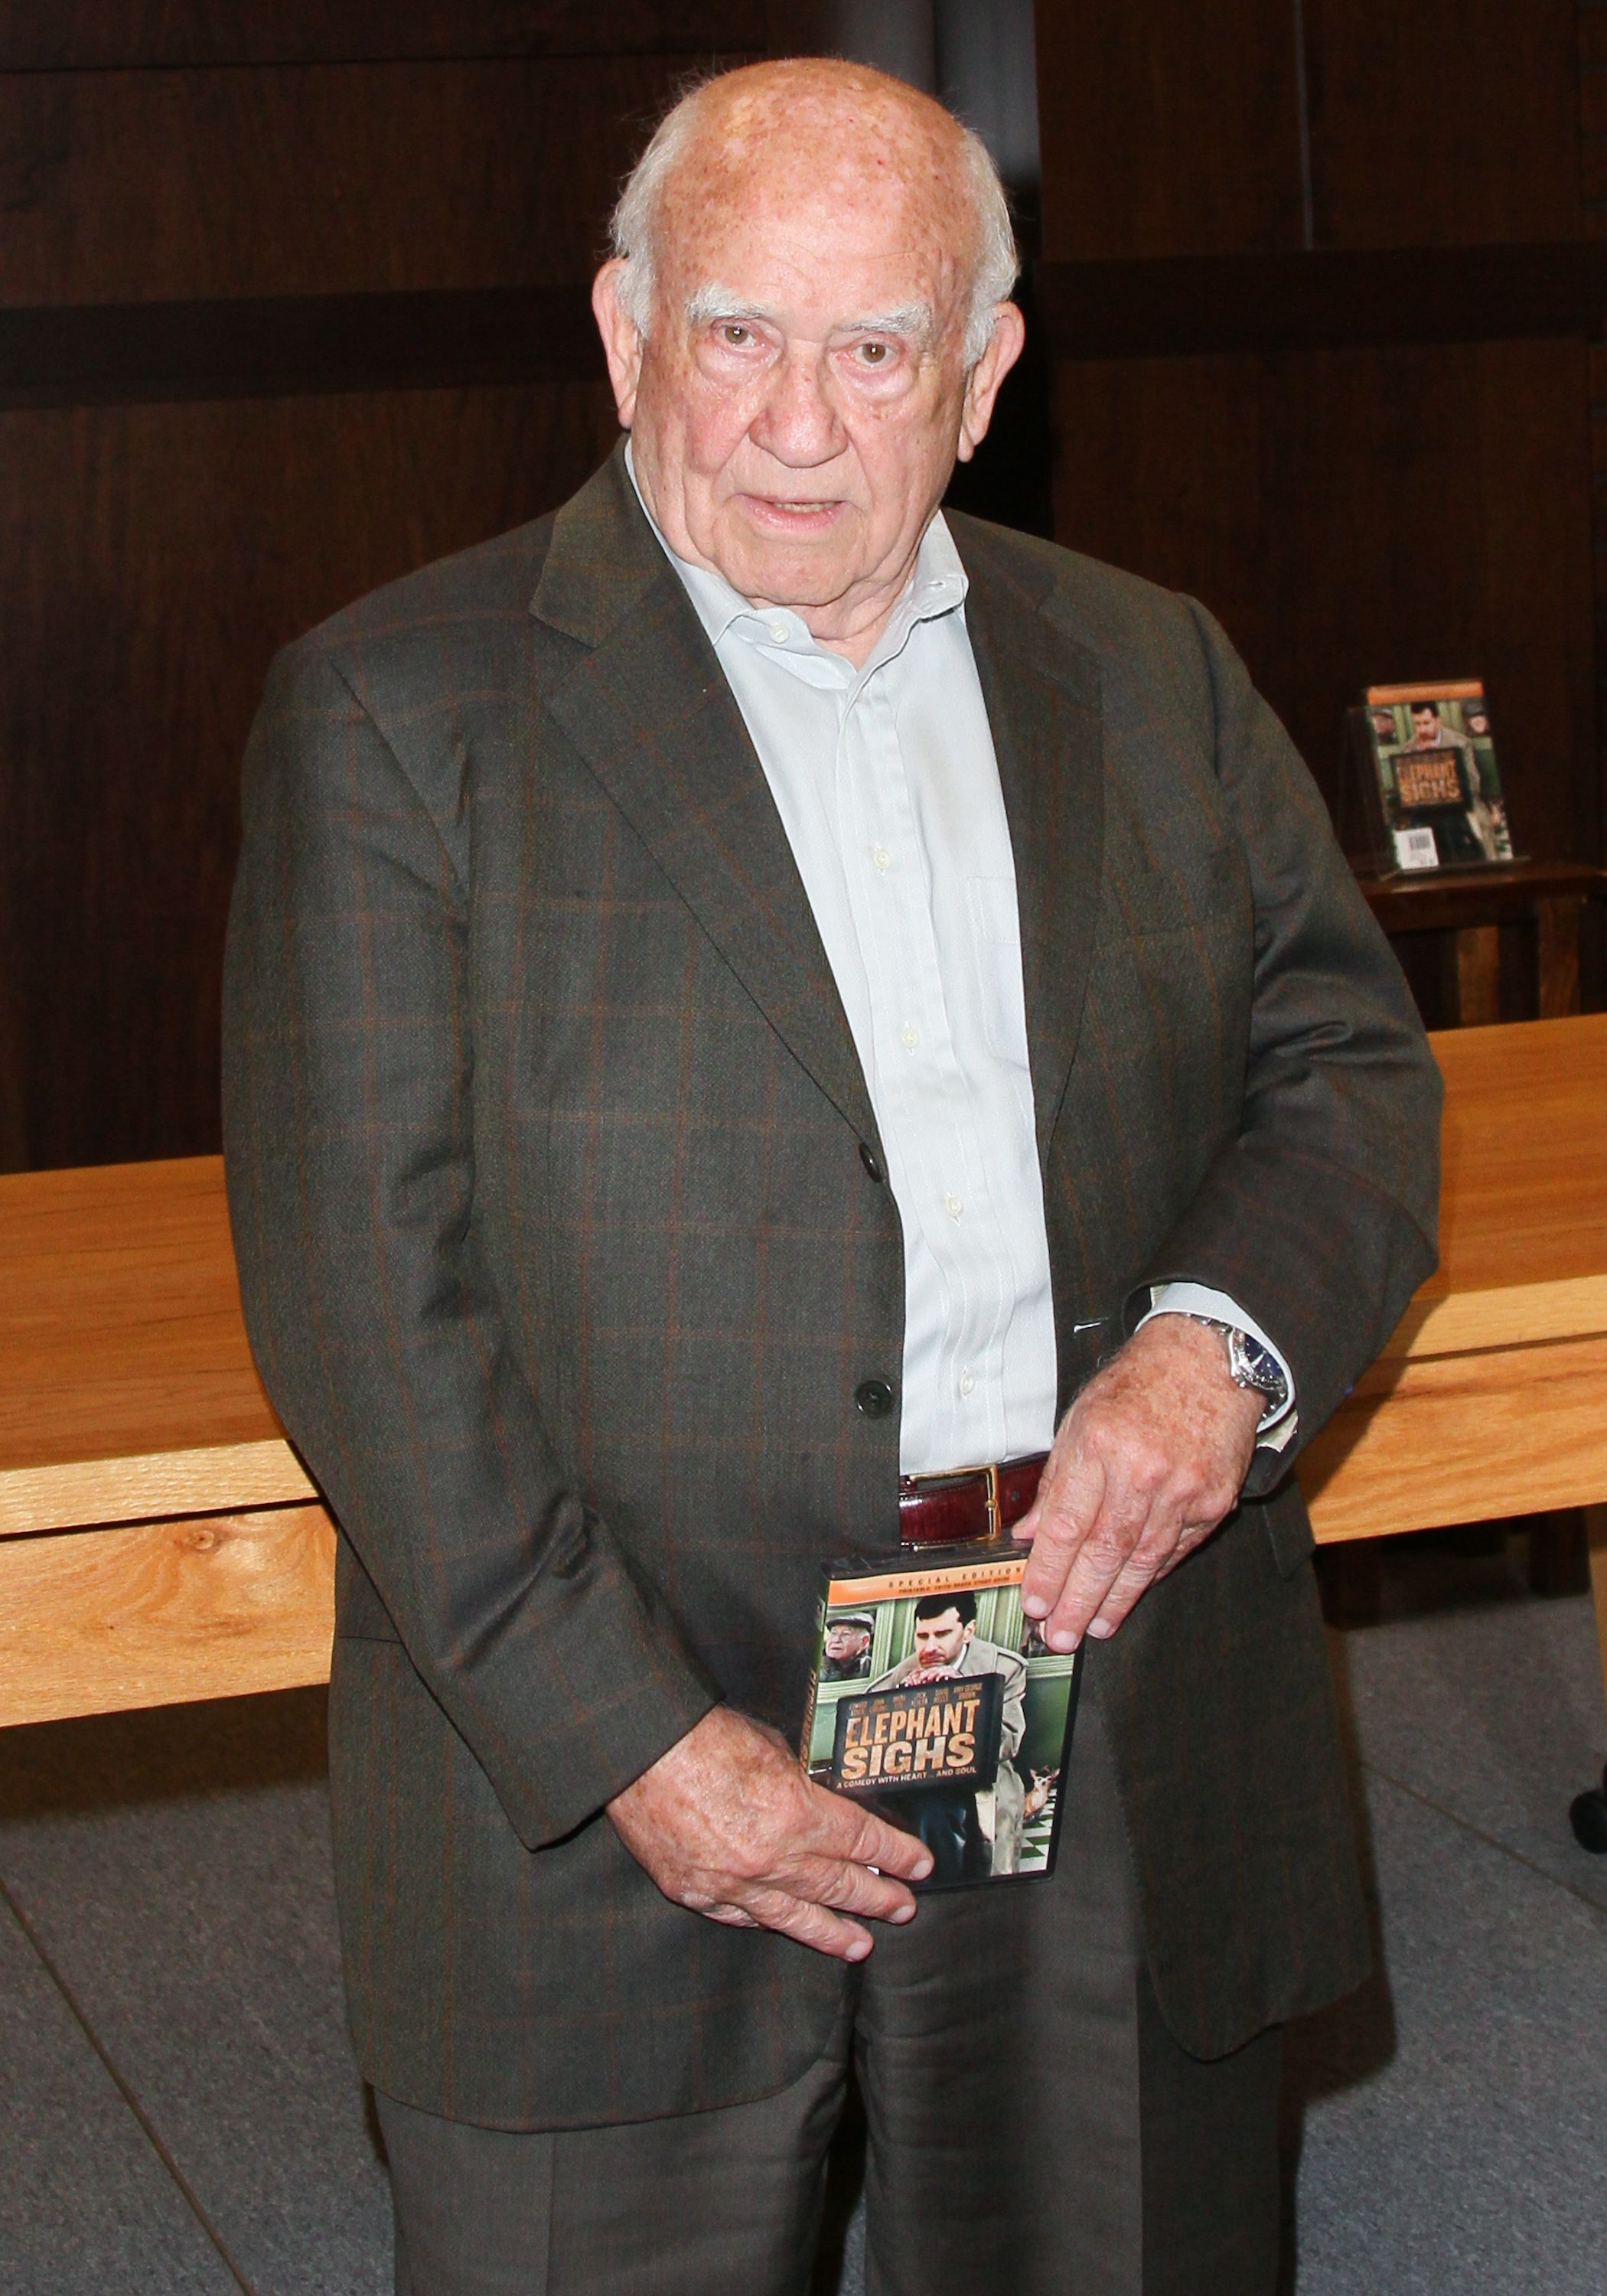 """Ed Asner at the DVD signing for """"Elephant Sighs"""" at Barnes & Noble bookstore on June 12, 2012, in Los Angeles, California   Photo: Paul Archuleta/Getty Images"""